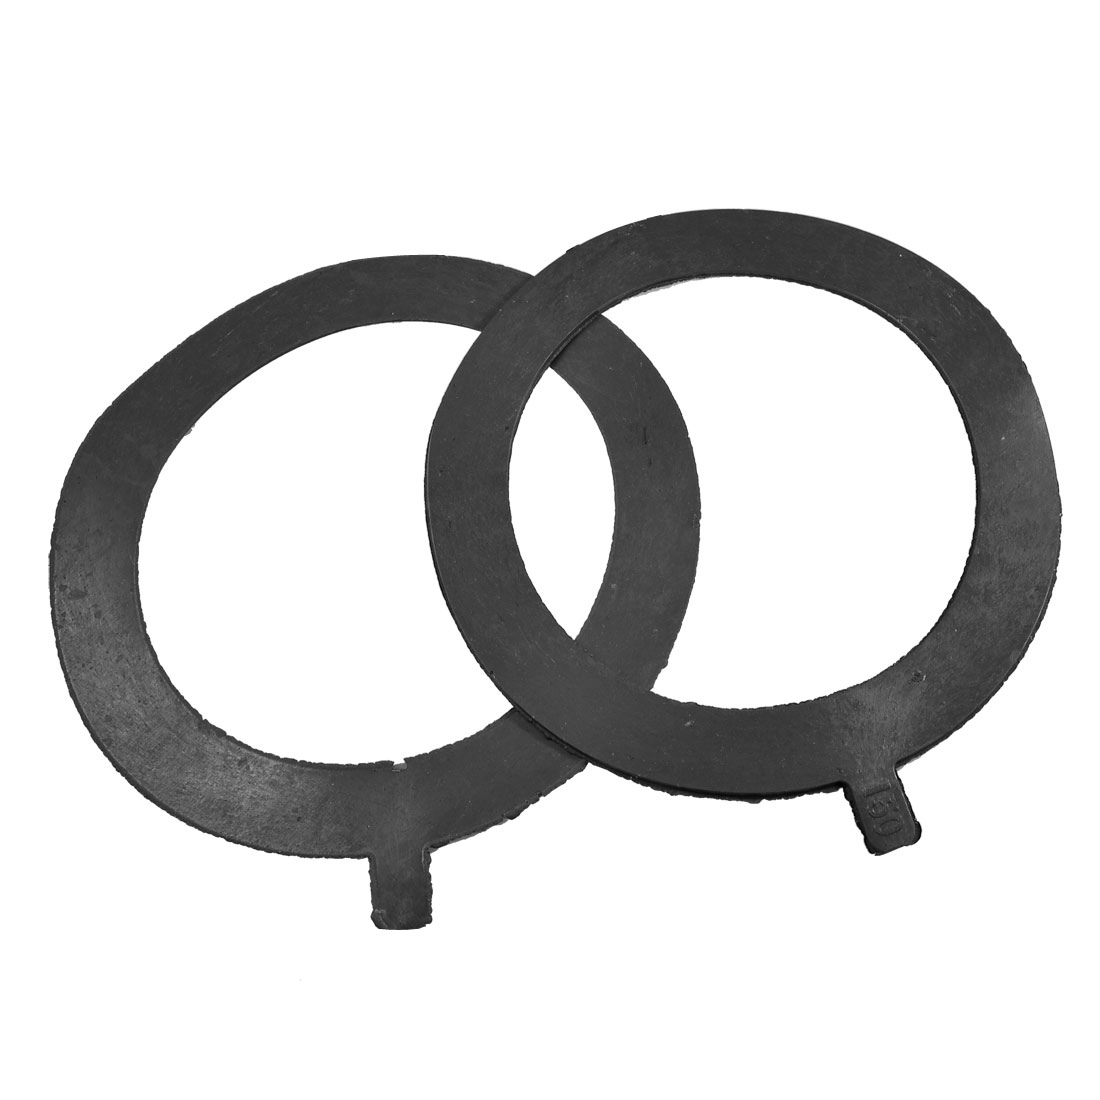 Water Pump Pipe Valves 200mm x 150mm x 2.4mm Rubber Seal Gaskets 2pcs